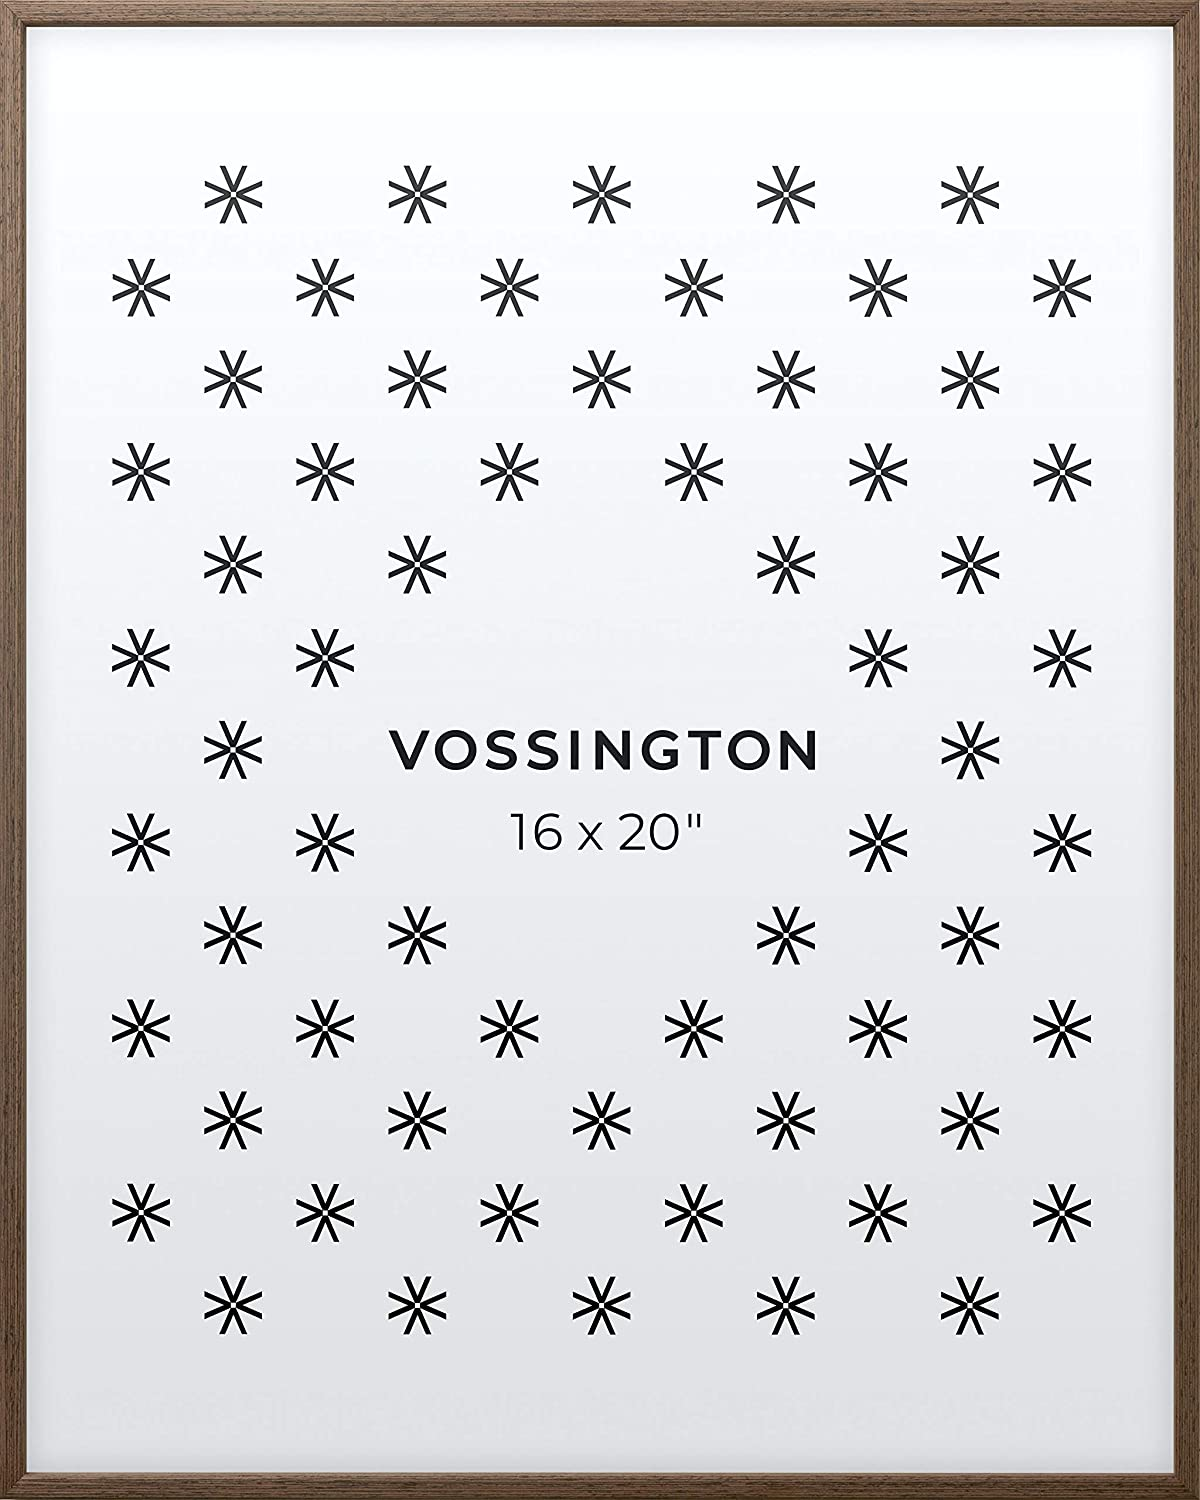 Vossington 16x20 Frame | Exclusive Exotic Wood Picture Frame | 16 x 20 Inch | Thin Modern Look